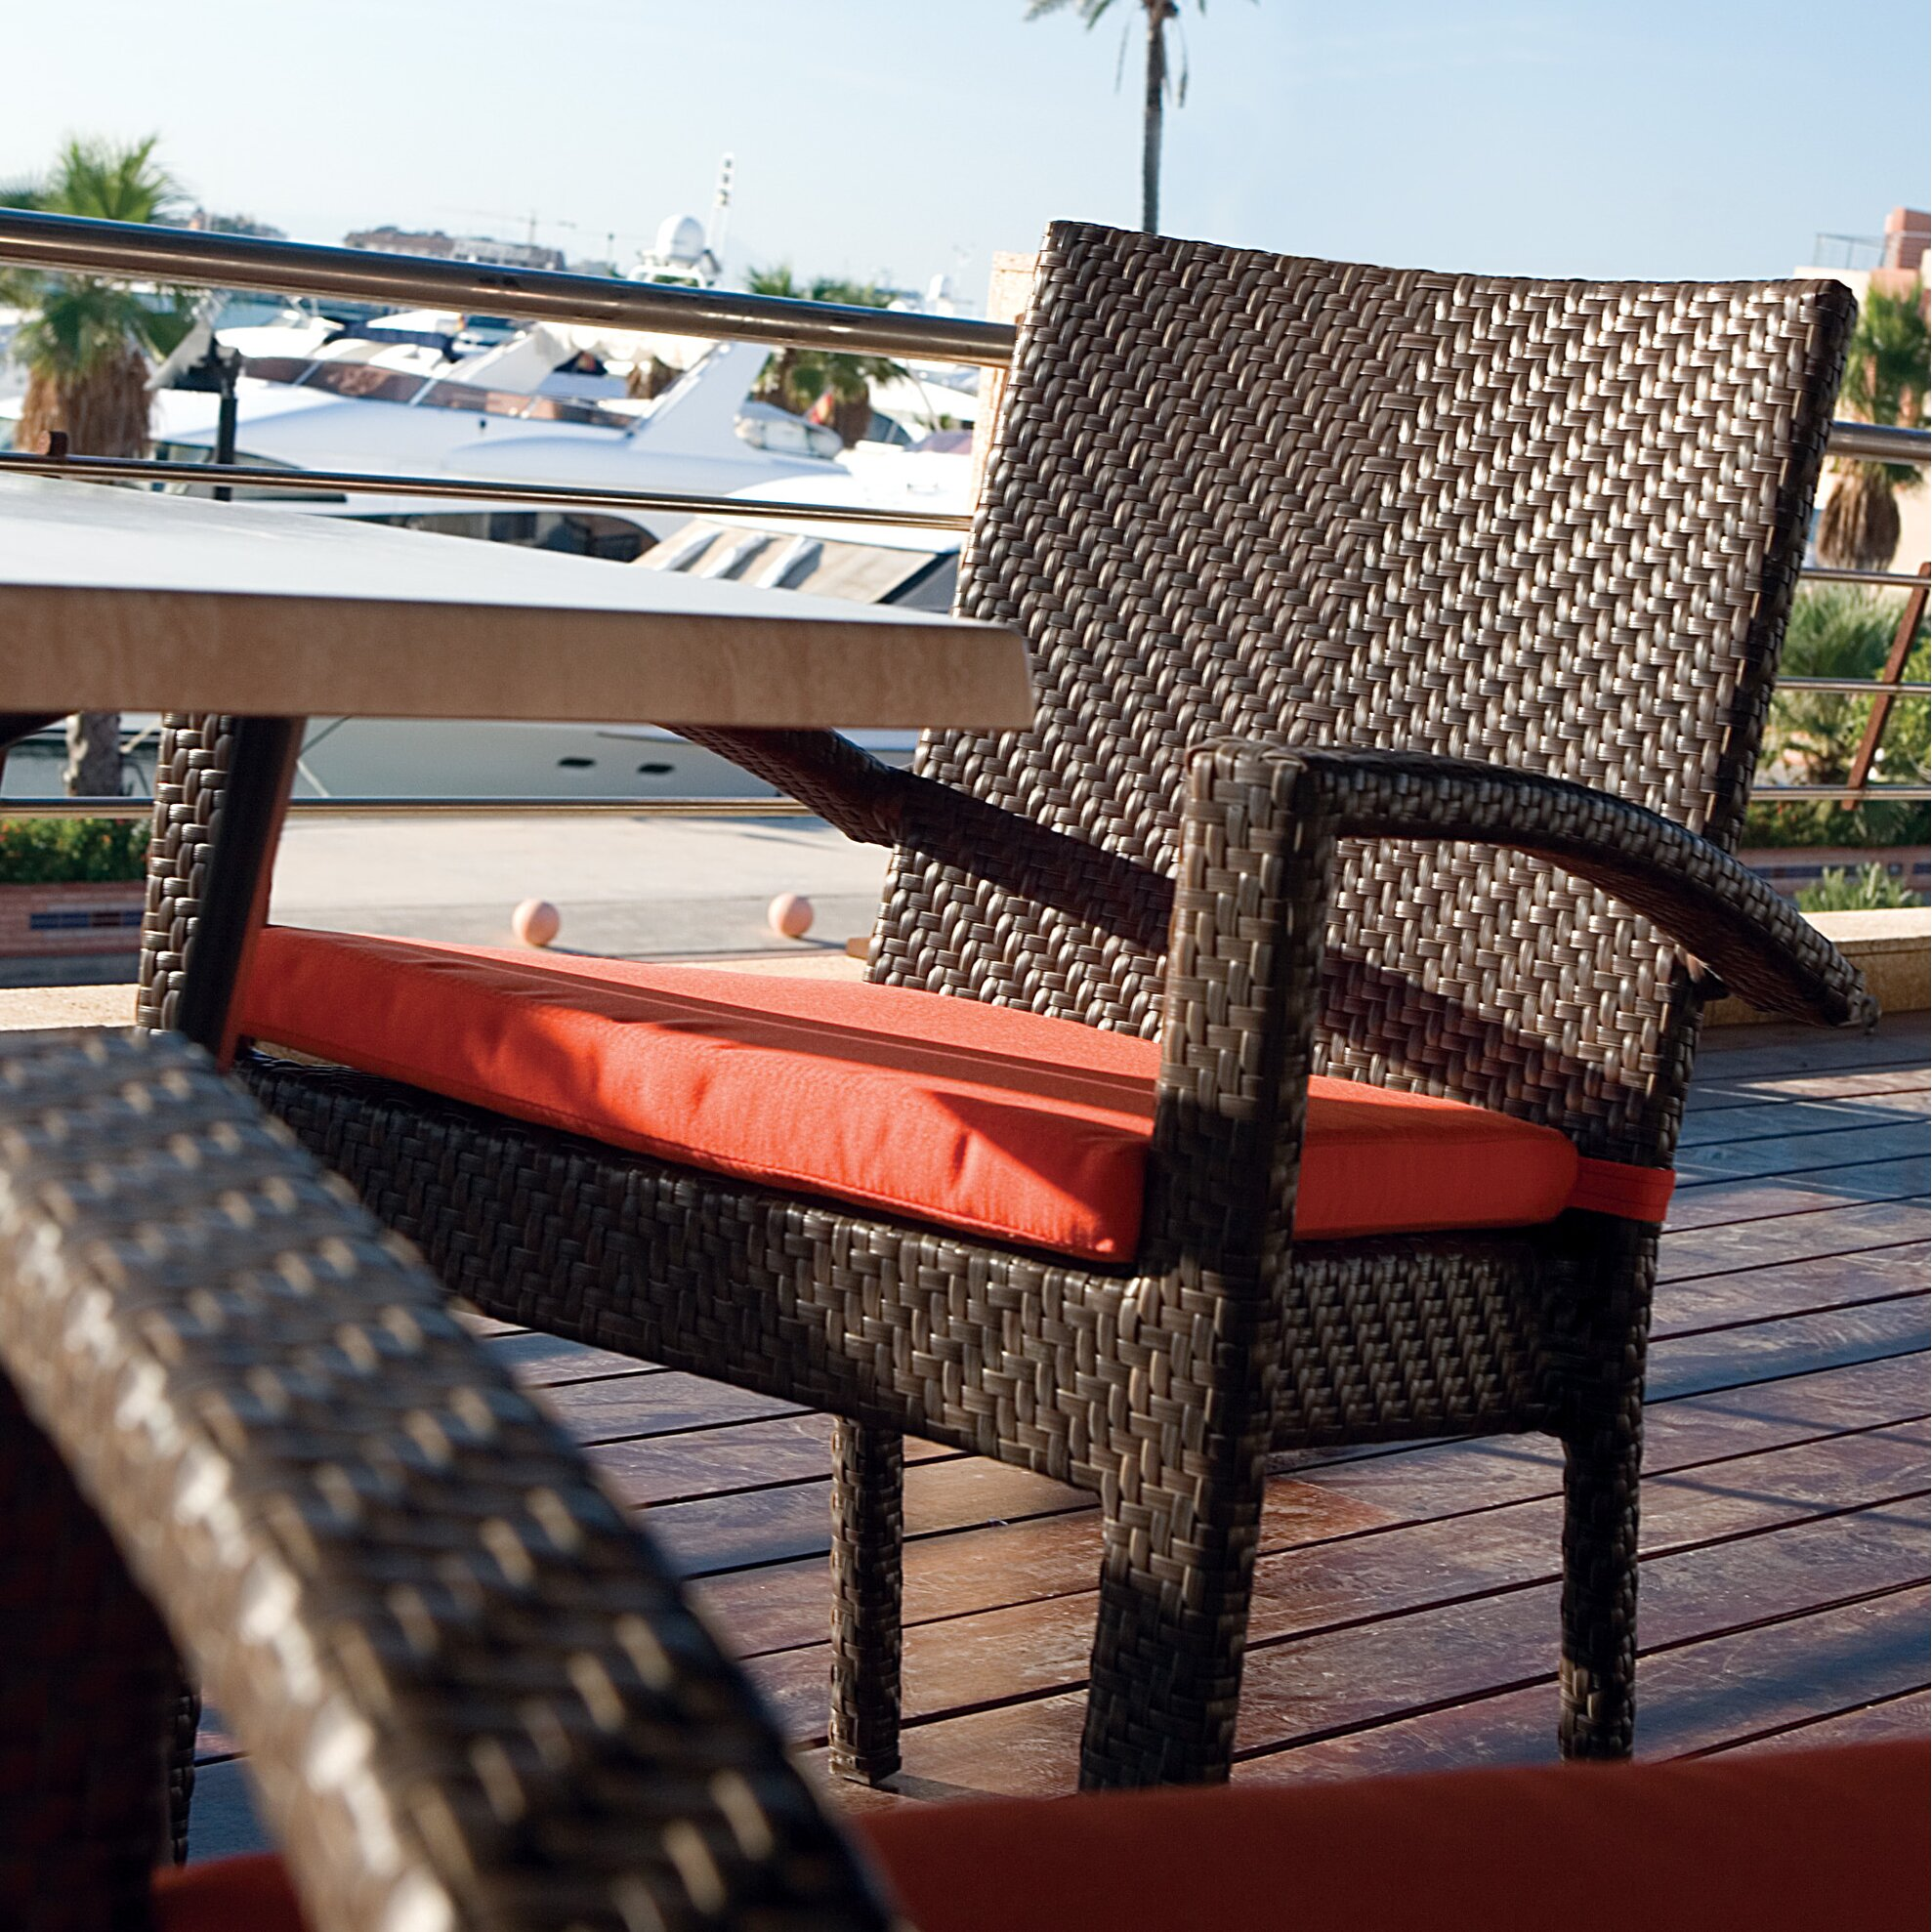 Hospitality Rattan Outdoor Furniture. Hospitality Rattan Outdoor Furniture   Outdoor Designs